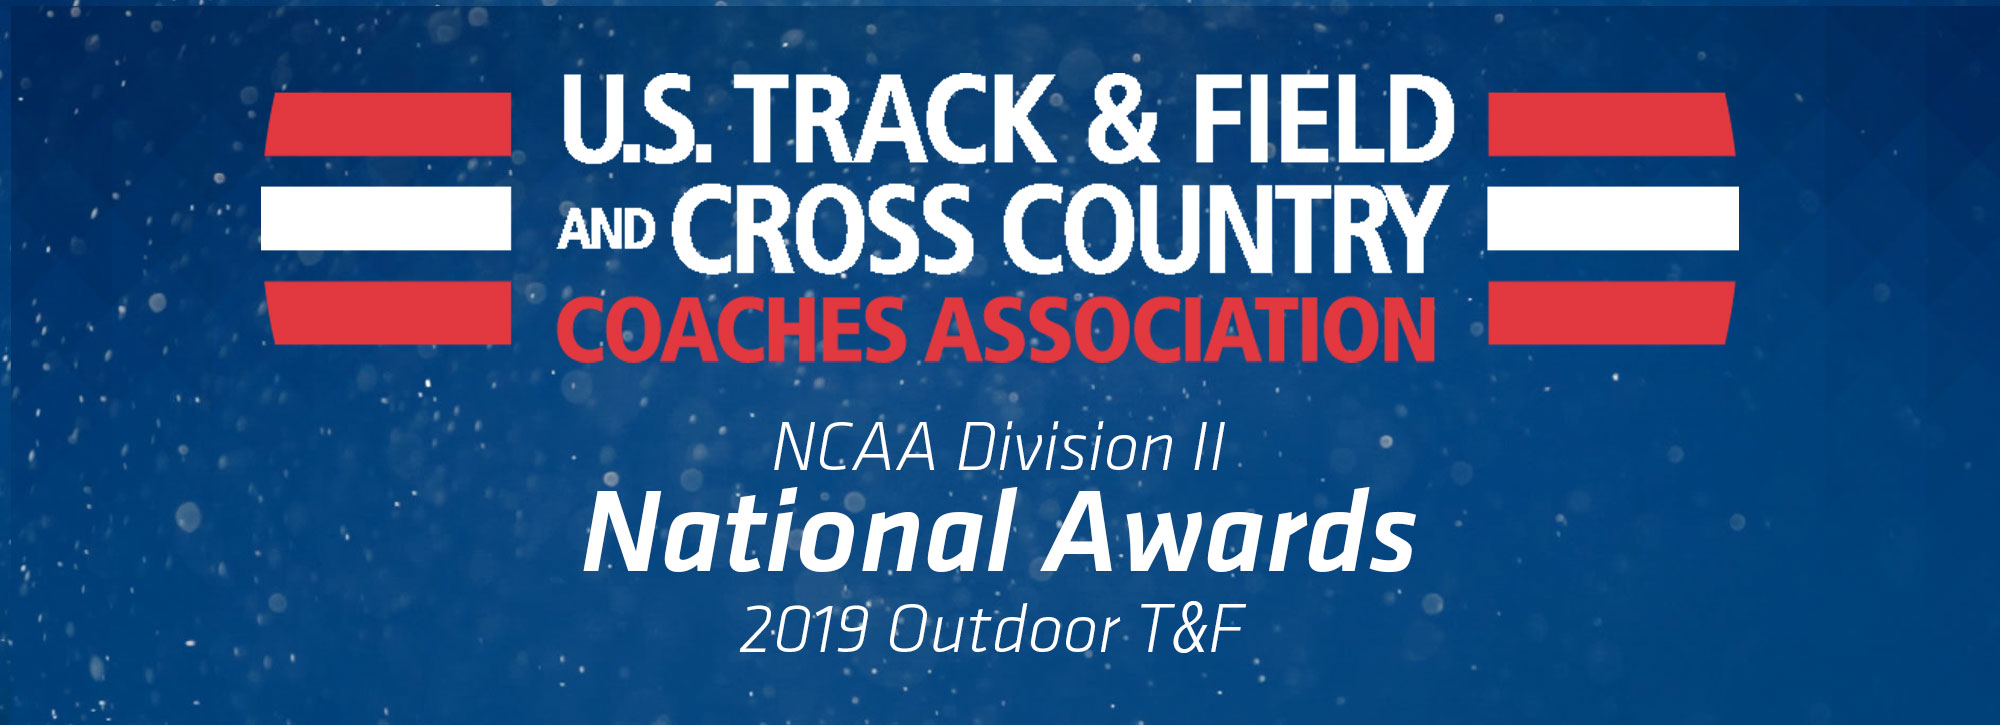 GLIAC Claims Three USTFCCCA Major Awards